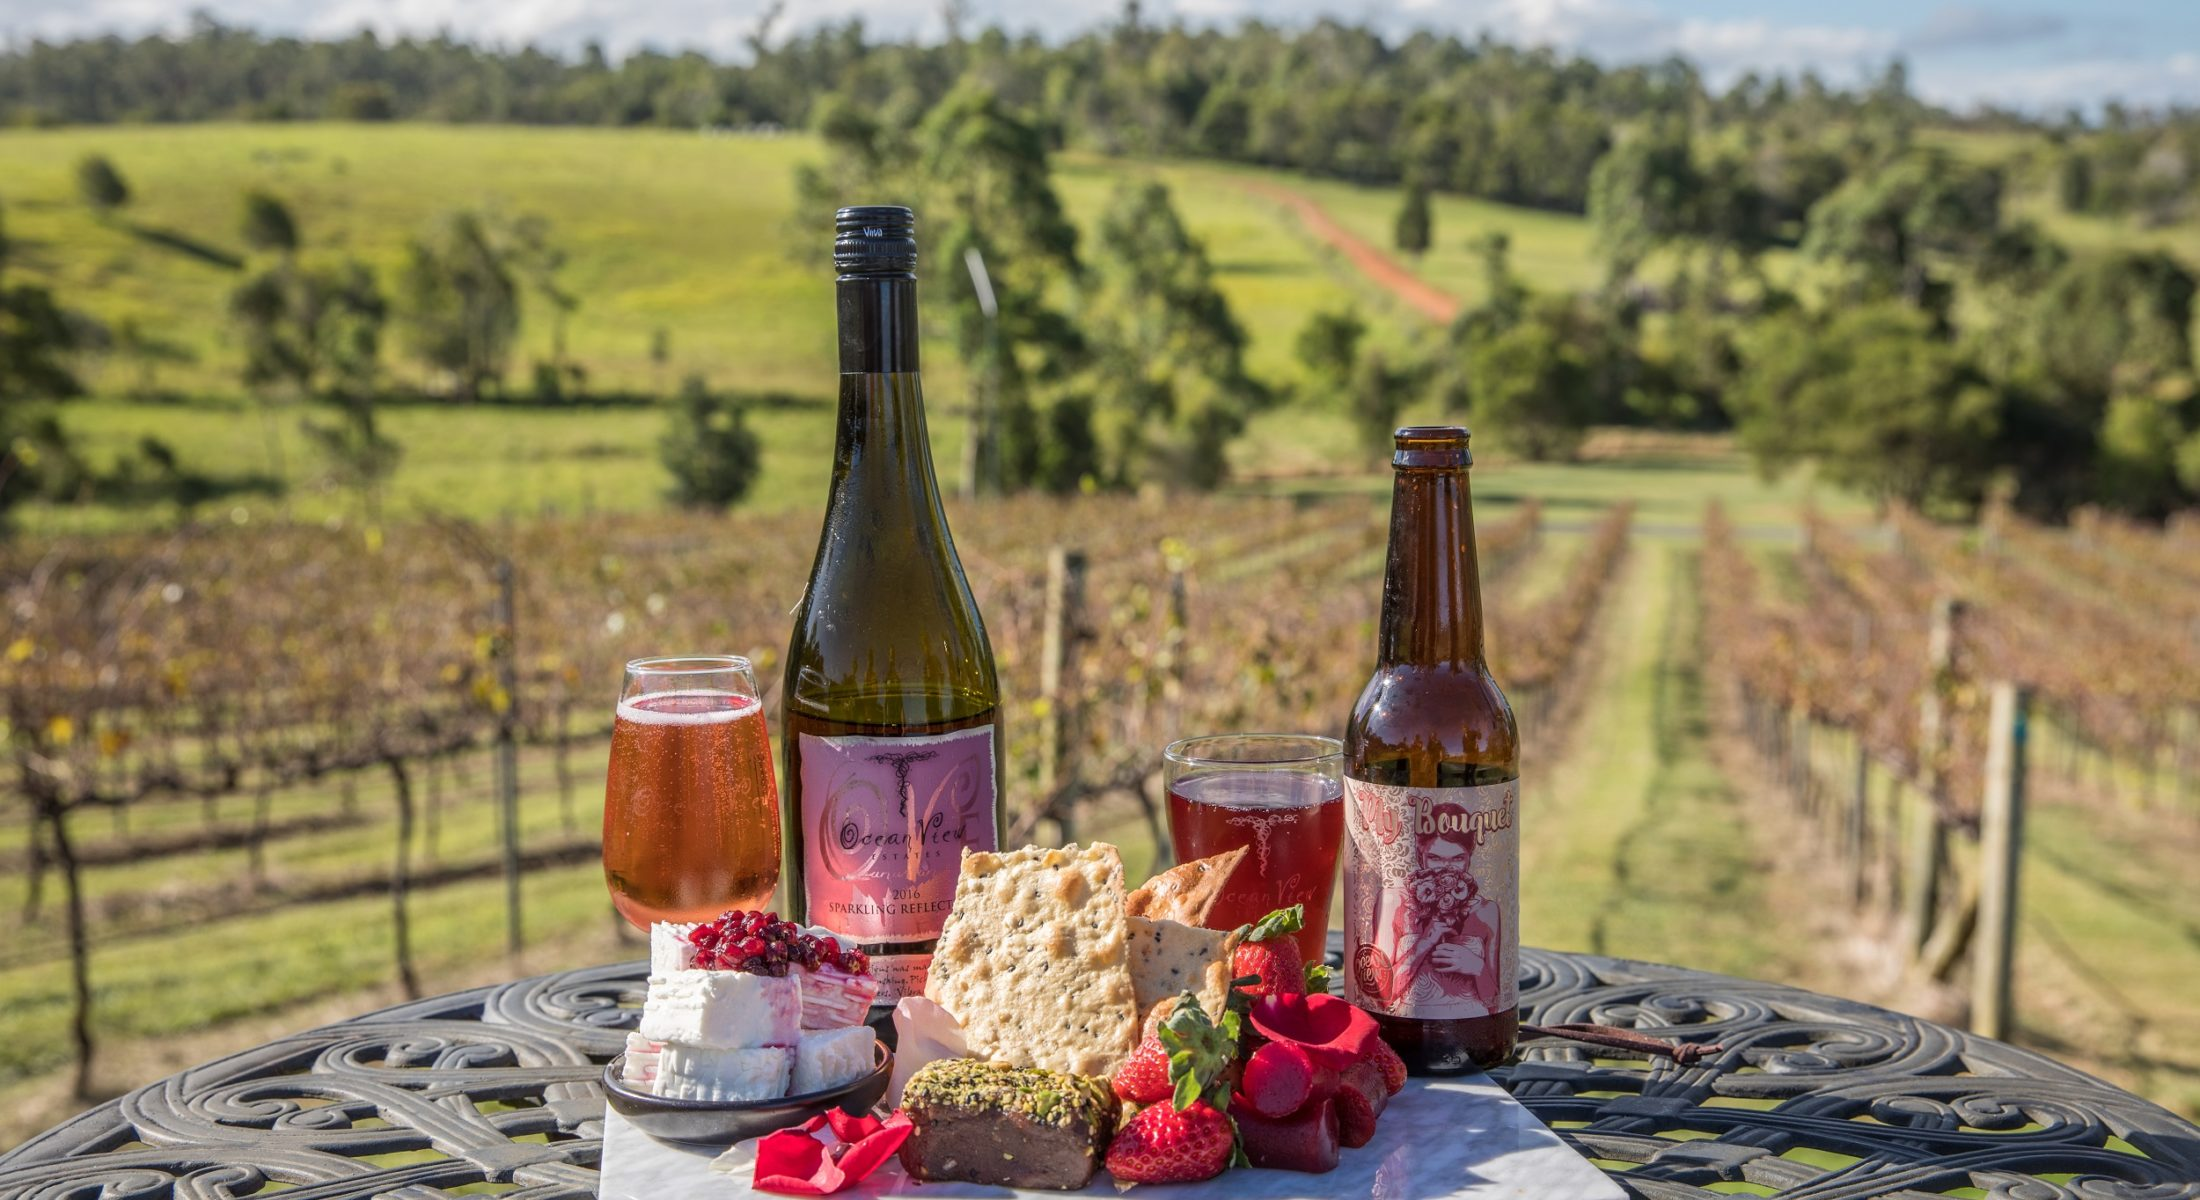 Cheese Strawberries Ocean View Estates Food Moreton Bay Region